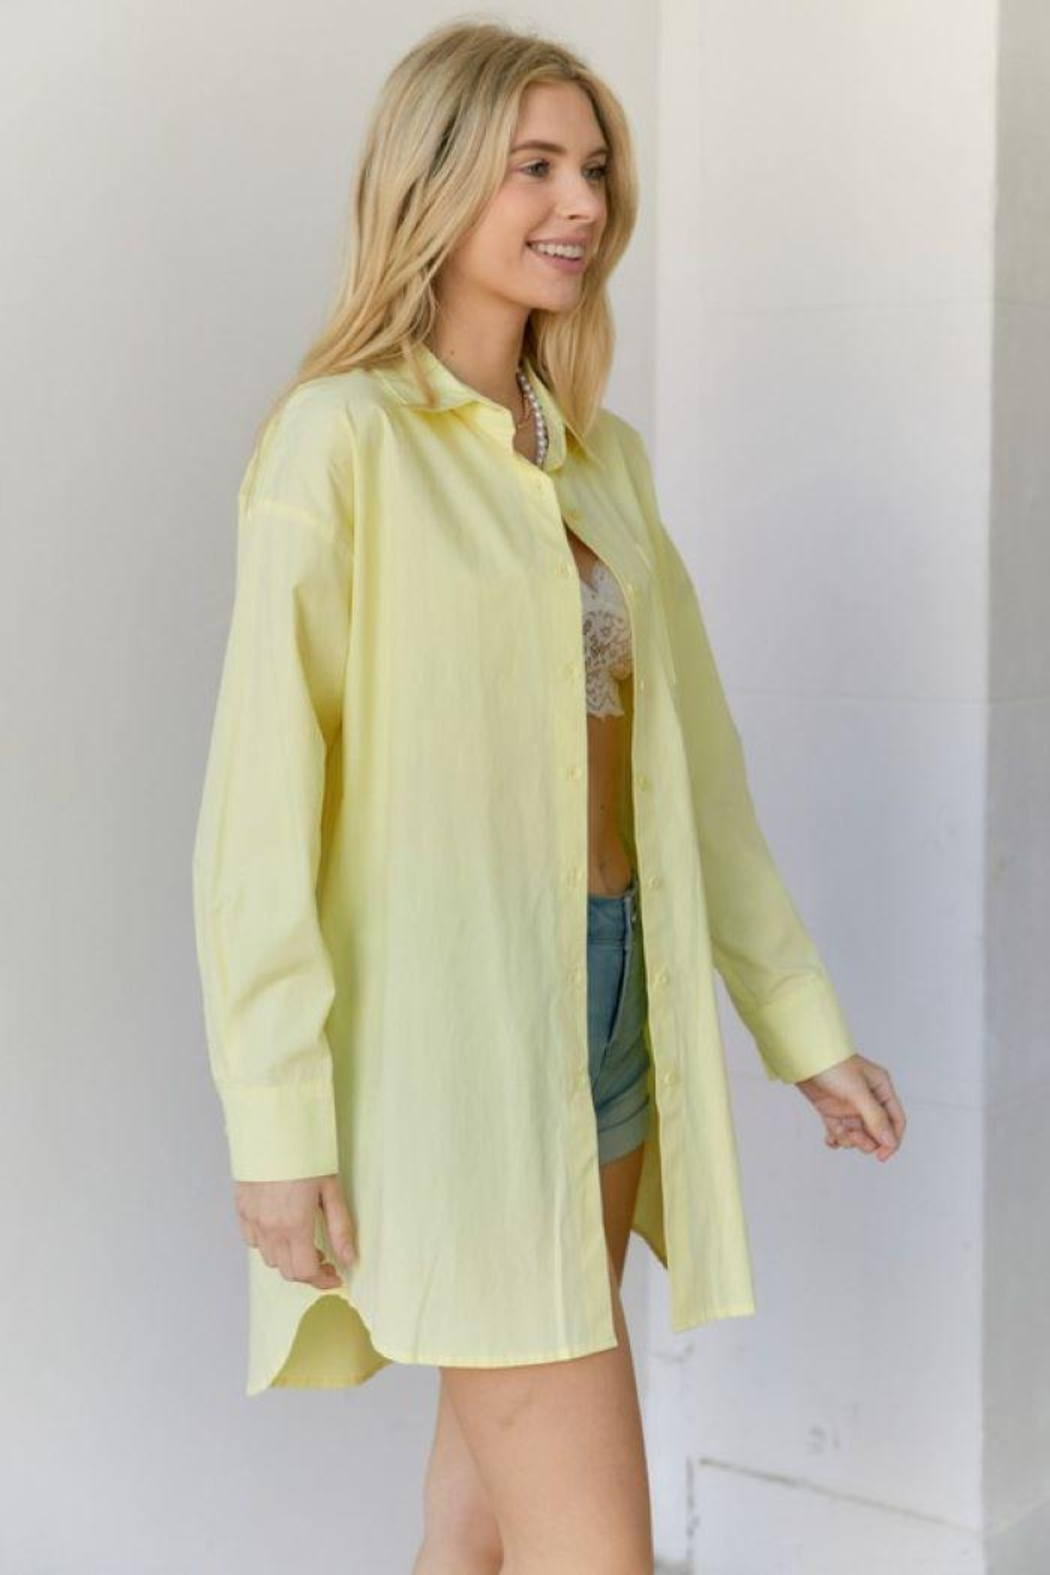 hers and mine Oversized Button Down Shirt - Front Full Image